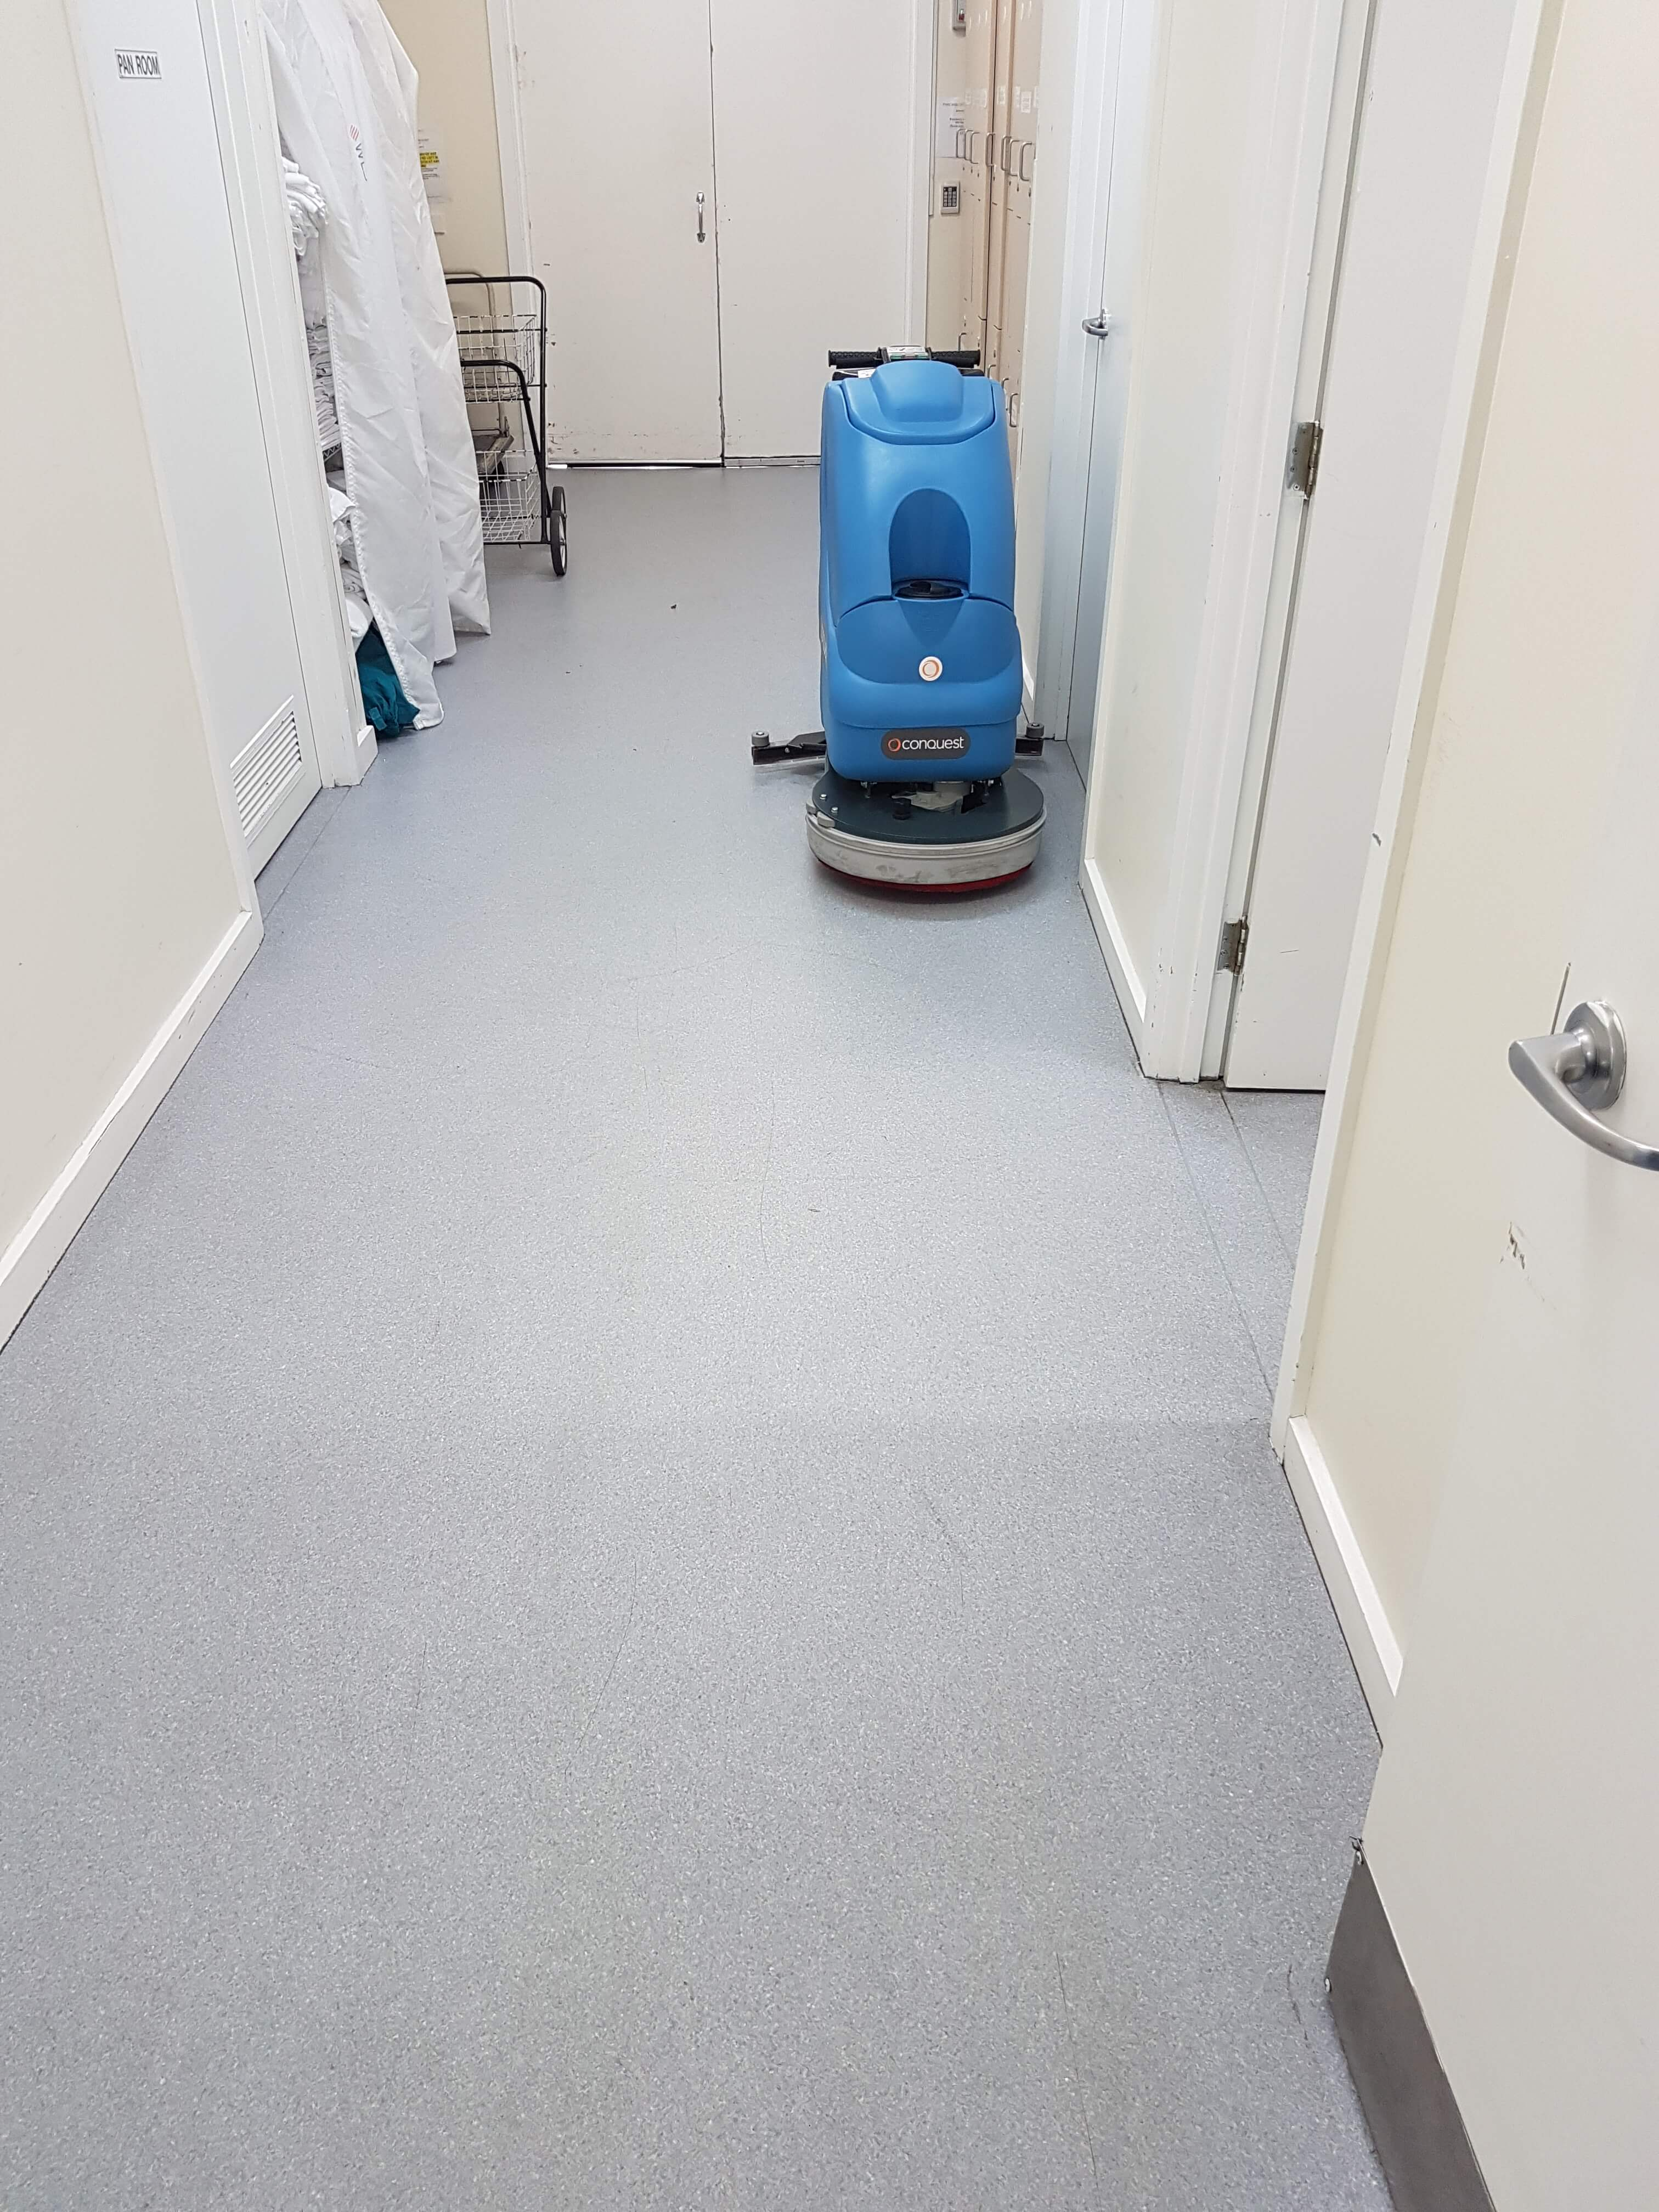 store room cleaning